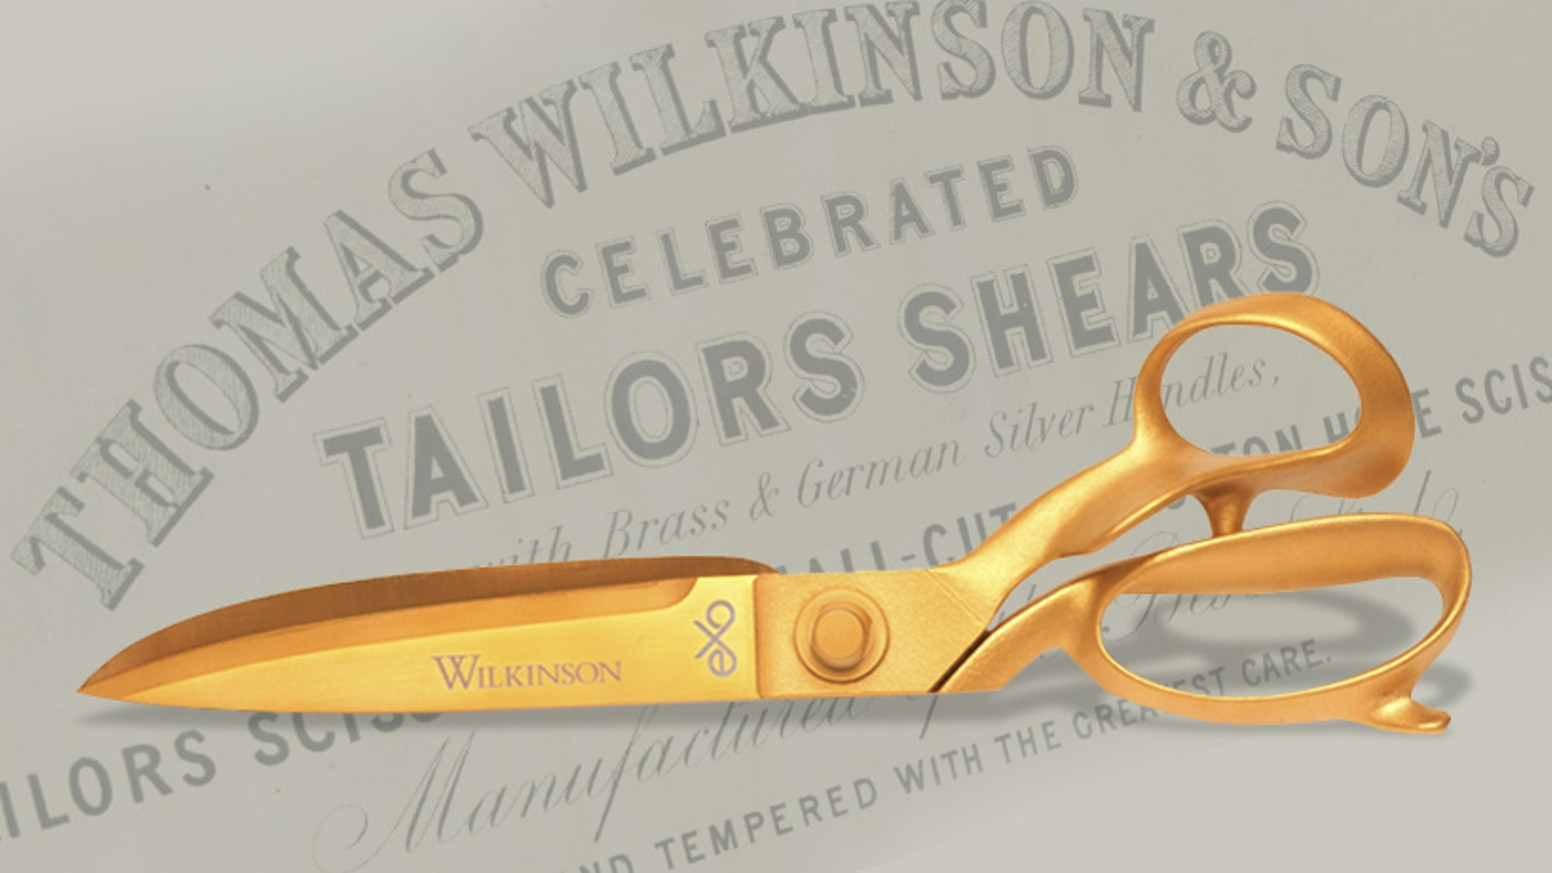 Groundbreaking new hand-crafted scissors from a great British heritage brand; the oldest scissor manufacturer in the western world. PRE-ORDER WEBSITE COMING SOON!